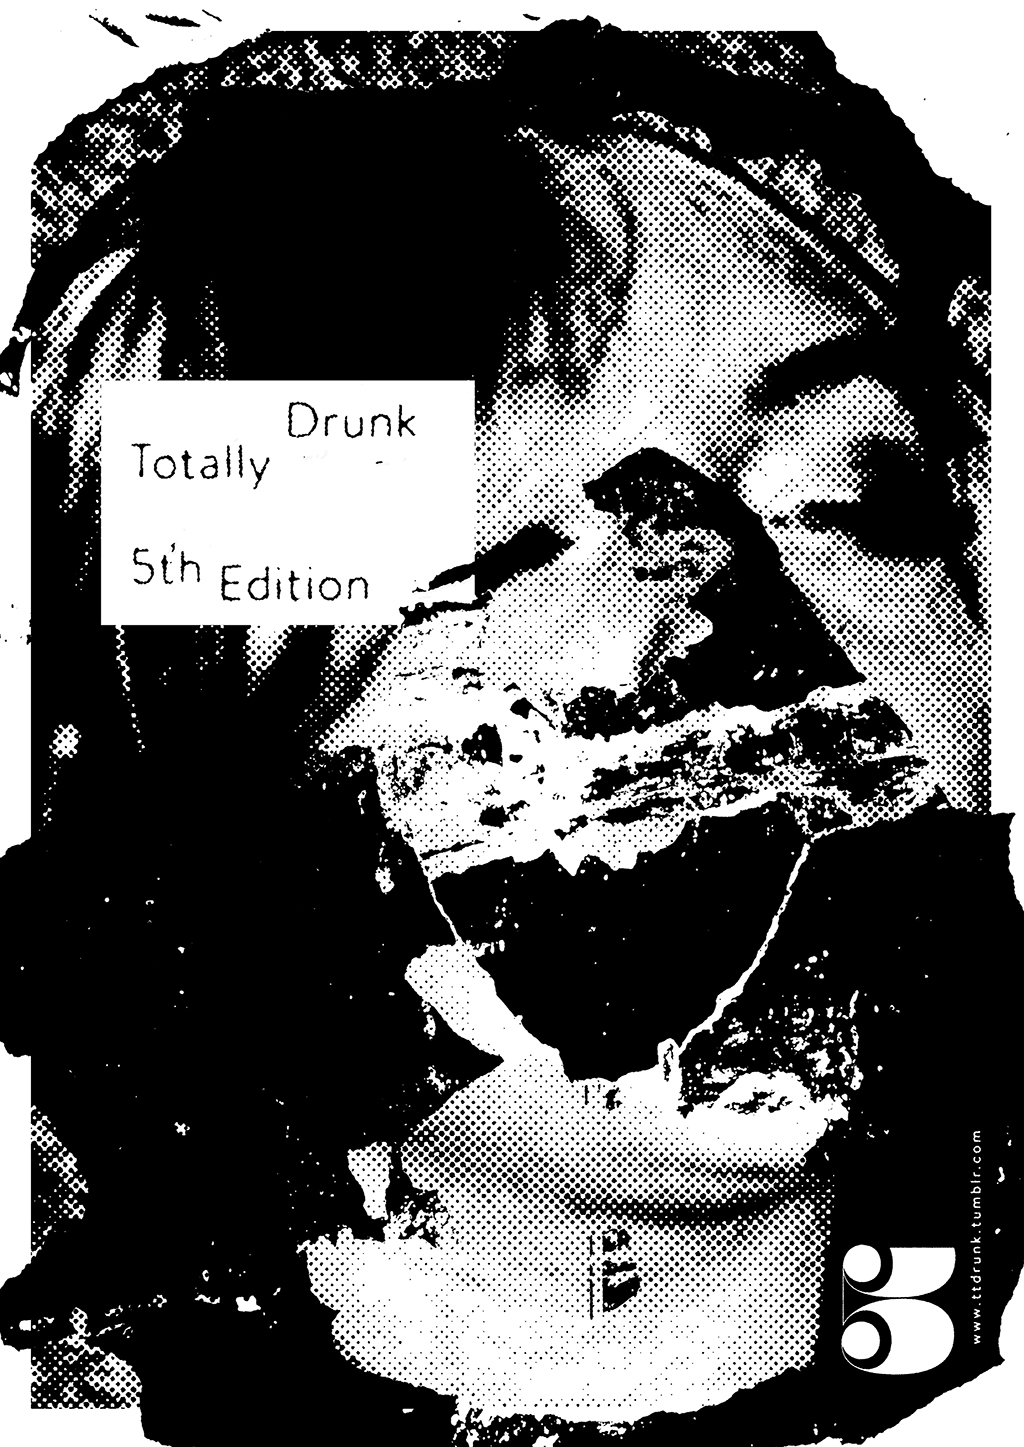 Totally Drunk 5th Edition This was originally going to be the second part of a diptych along side of the Jimmy Savile is a Creep poster. The thought behind it focuses on the victim Lindsay Lohan and the effects of being a child actor. Similar to The Savile piece, this shows a partial portrait along with literally blacked-out memories.